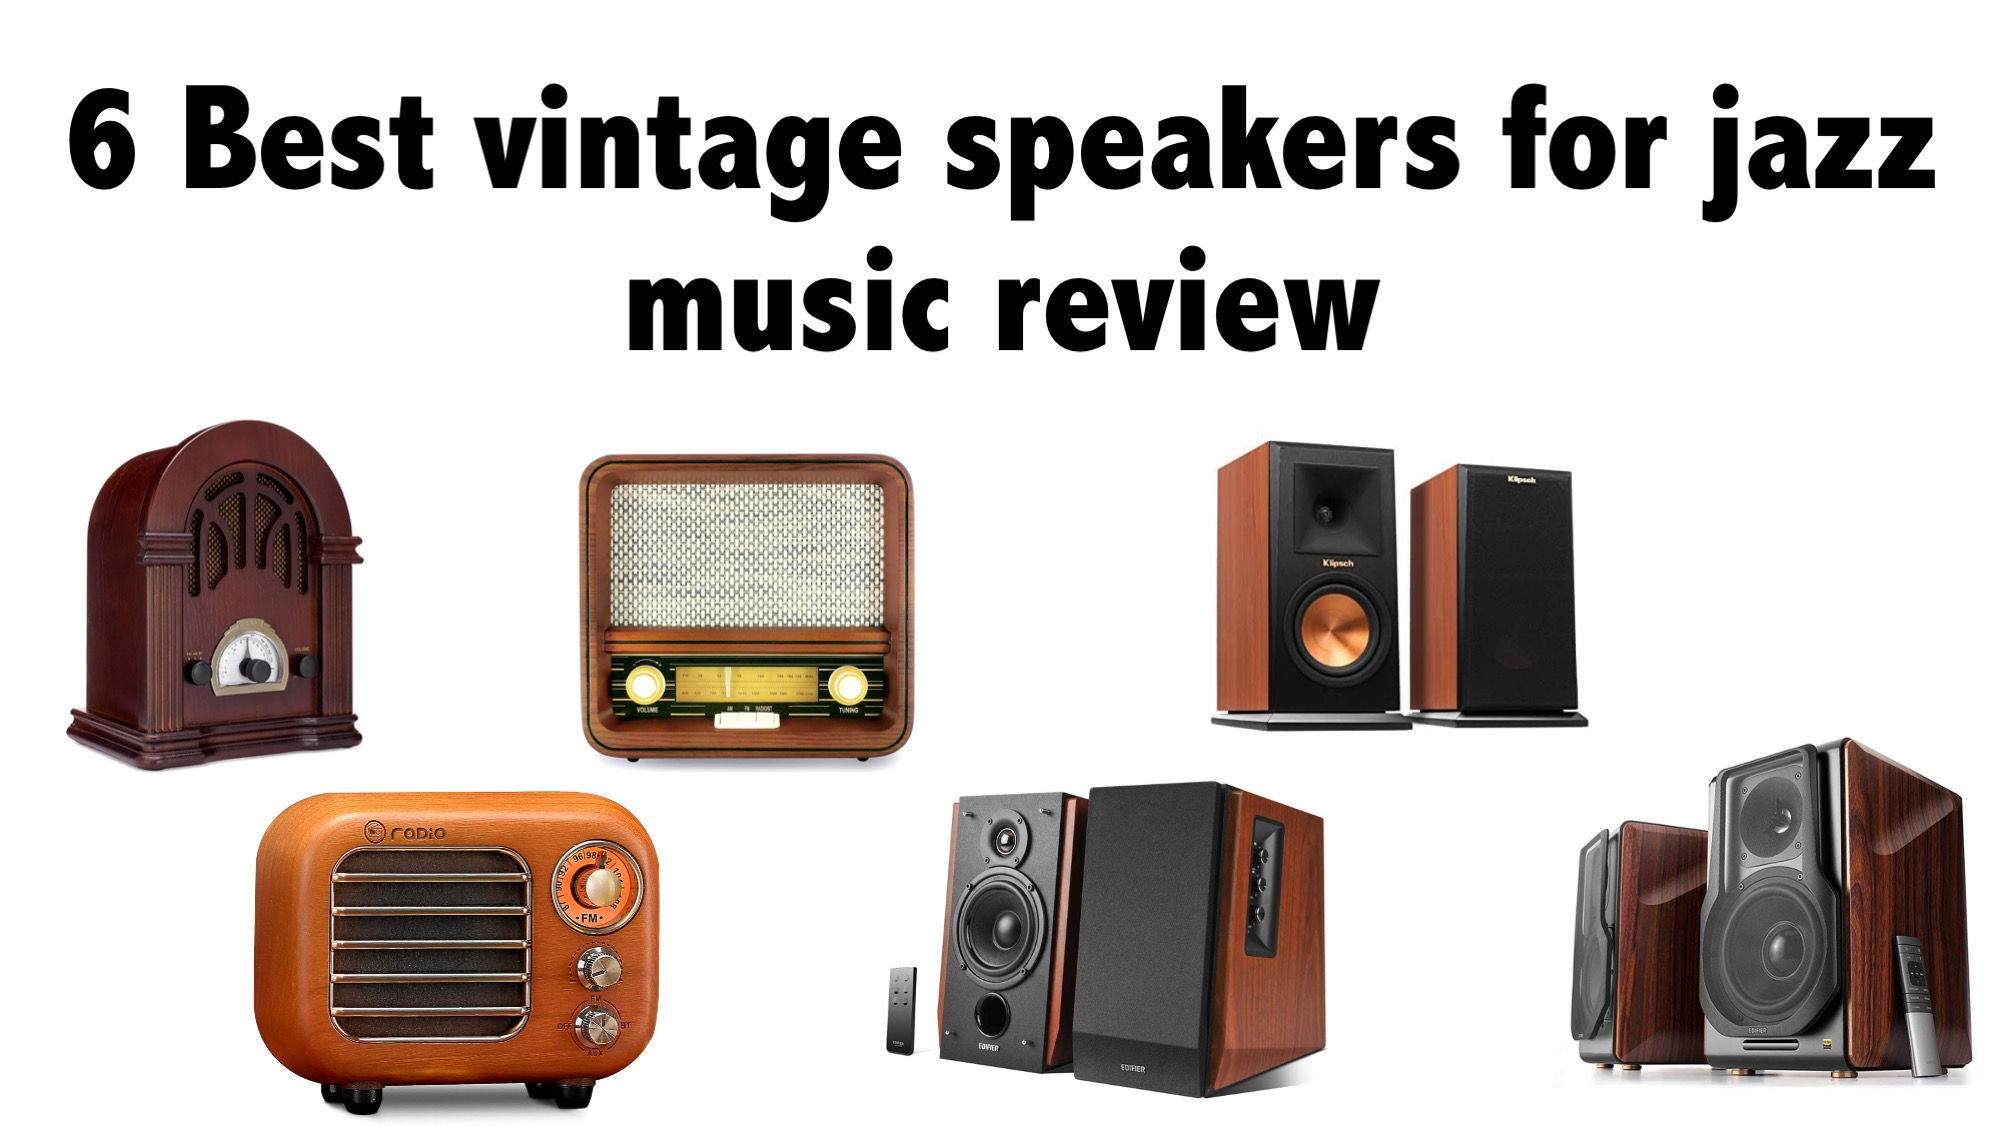 6 Best vintage speakers for jazz music review